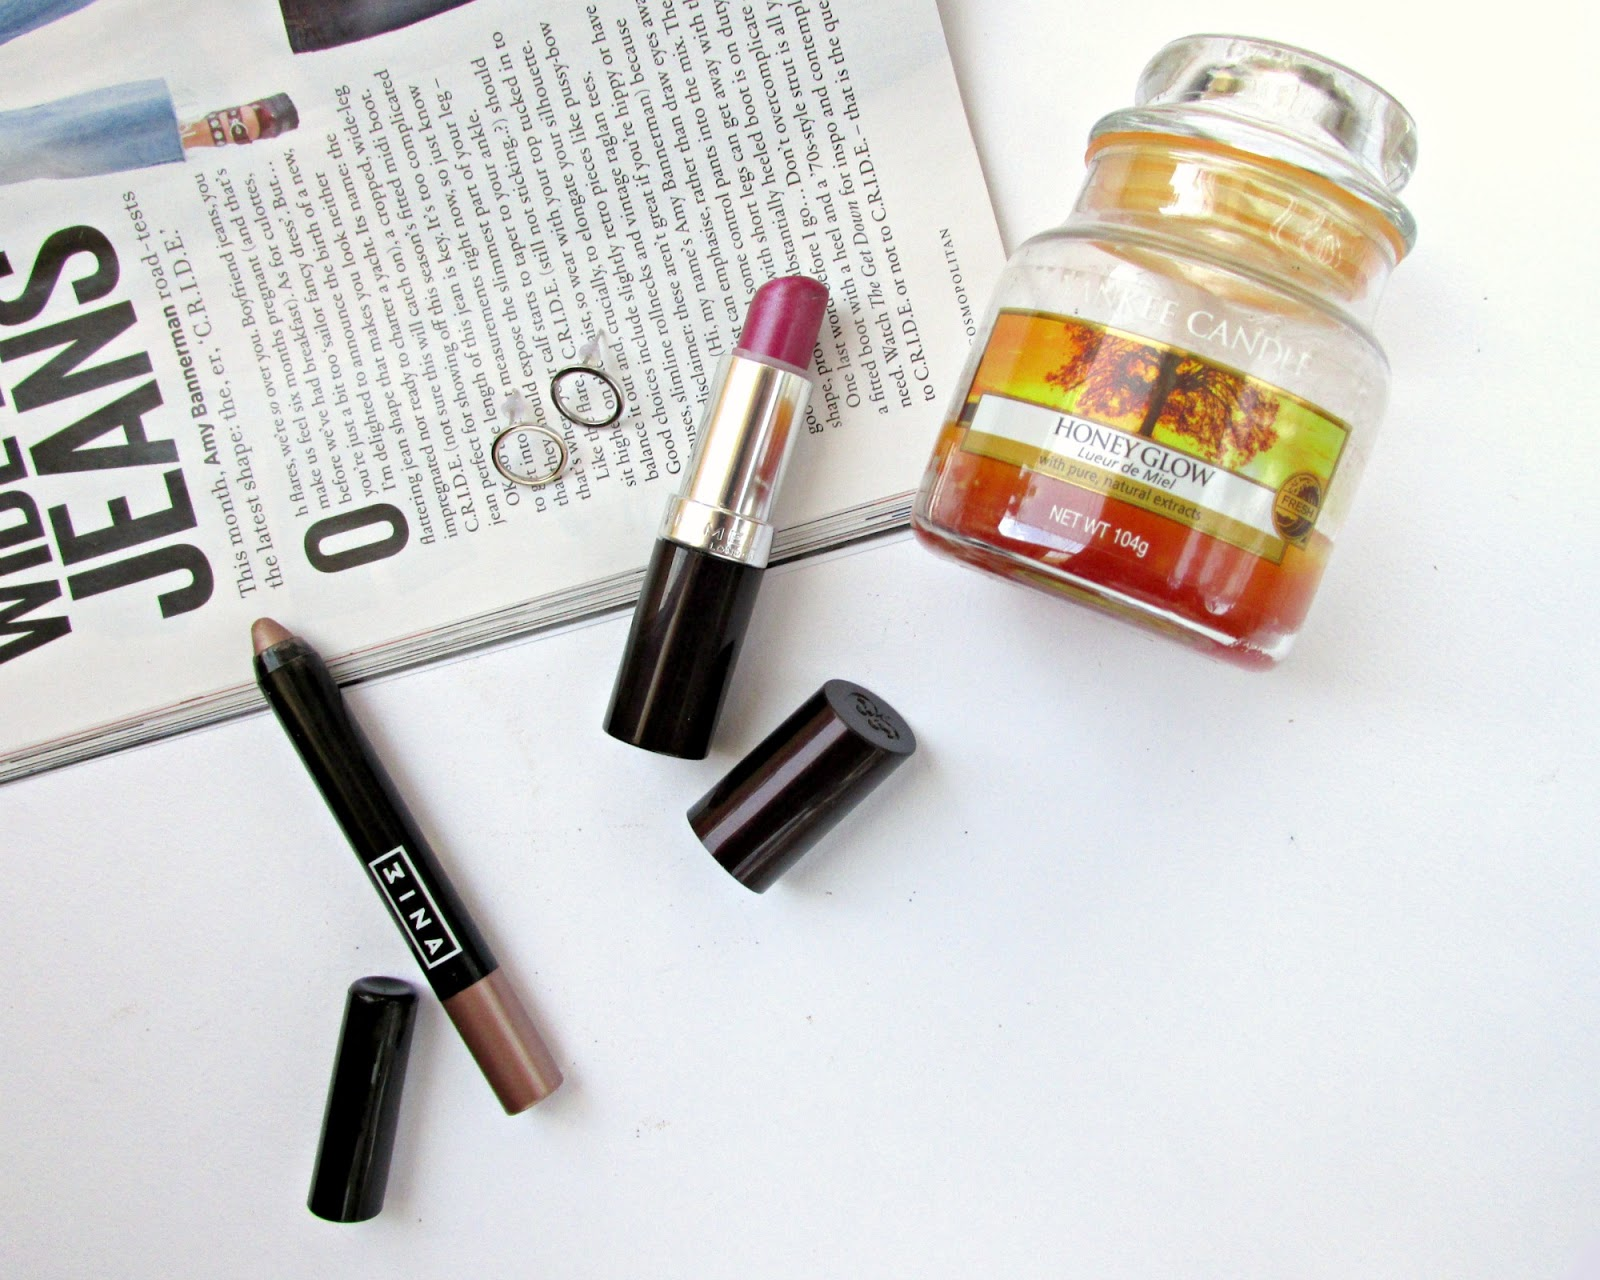 October favourites 2016, rimmel lipstick, 3ina eye shadow, Rosegal earrings, Yankee candle